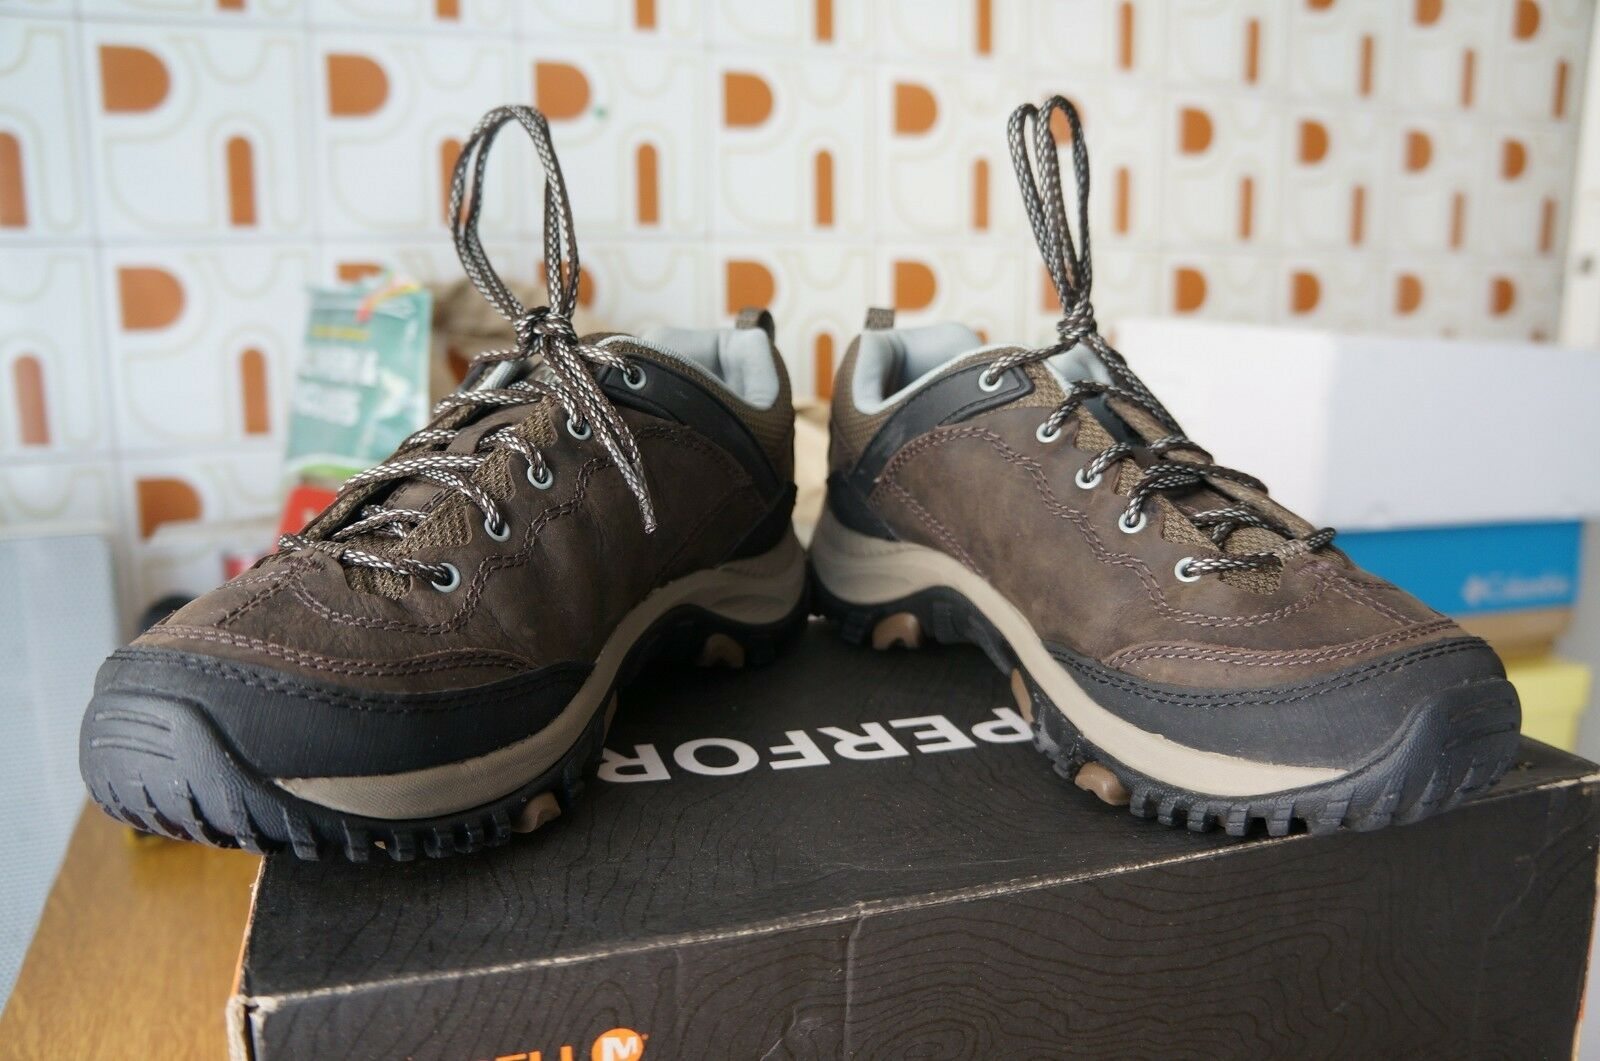 Merrell SALIDA TREKKER,  randonnée , uk marron, 38.5 EU 5.5 uk , 8 us 25 cm - ff5b35